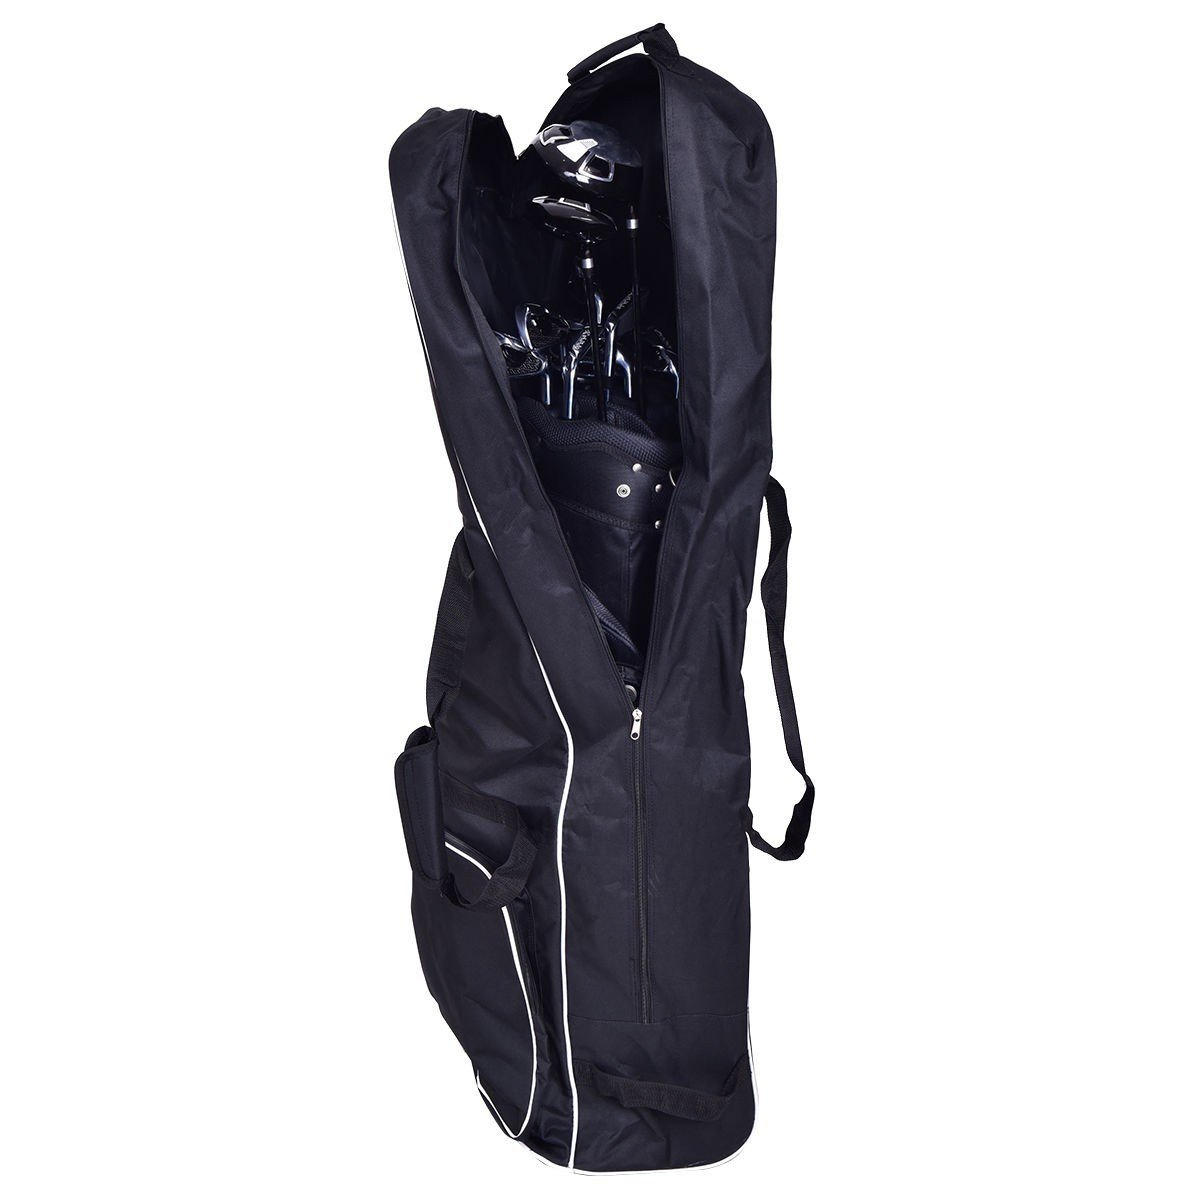 Apontus Black Foldable Golf Bag Travel Cover with Wheel